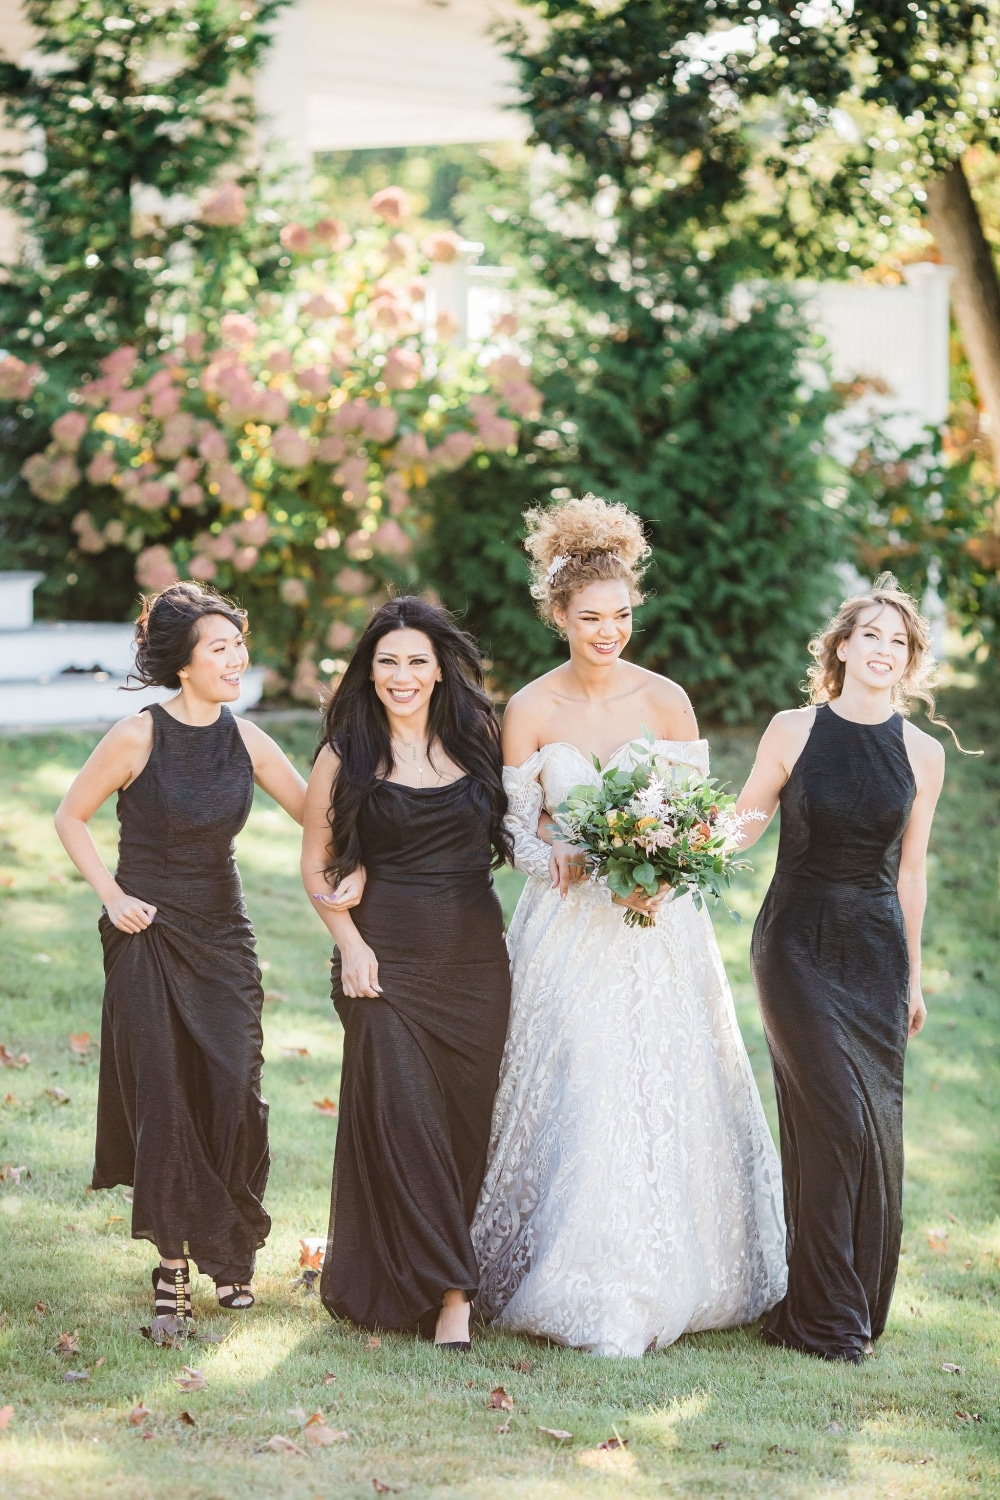 bride in white strapless ballgown smiling amongst her bridesmaids with black dresses